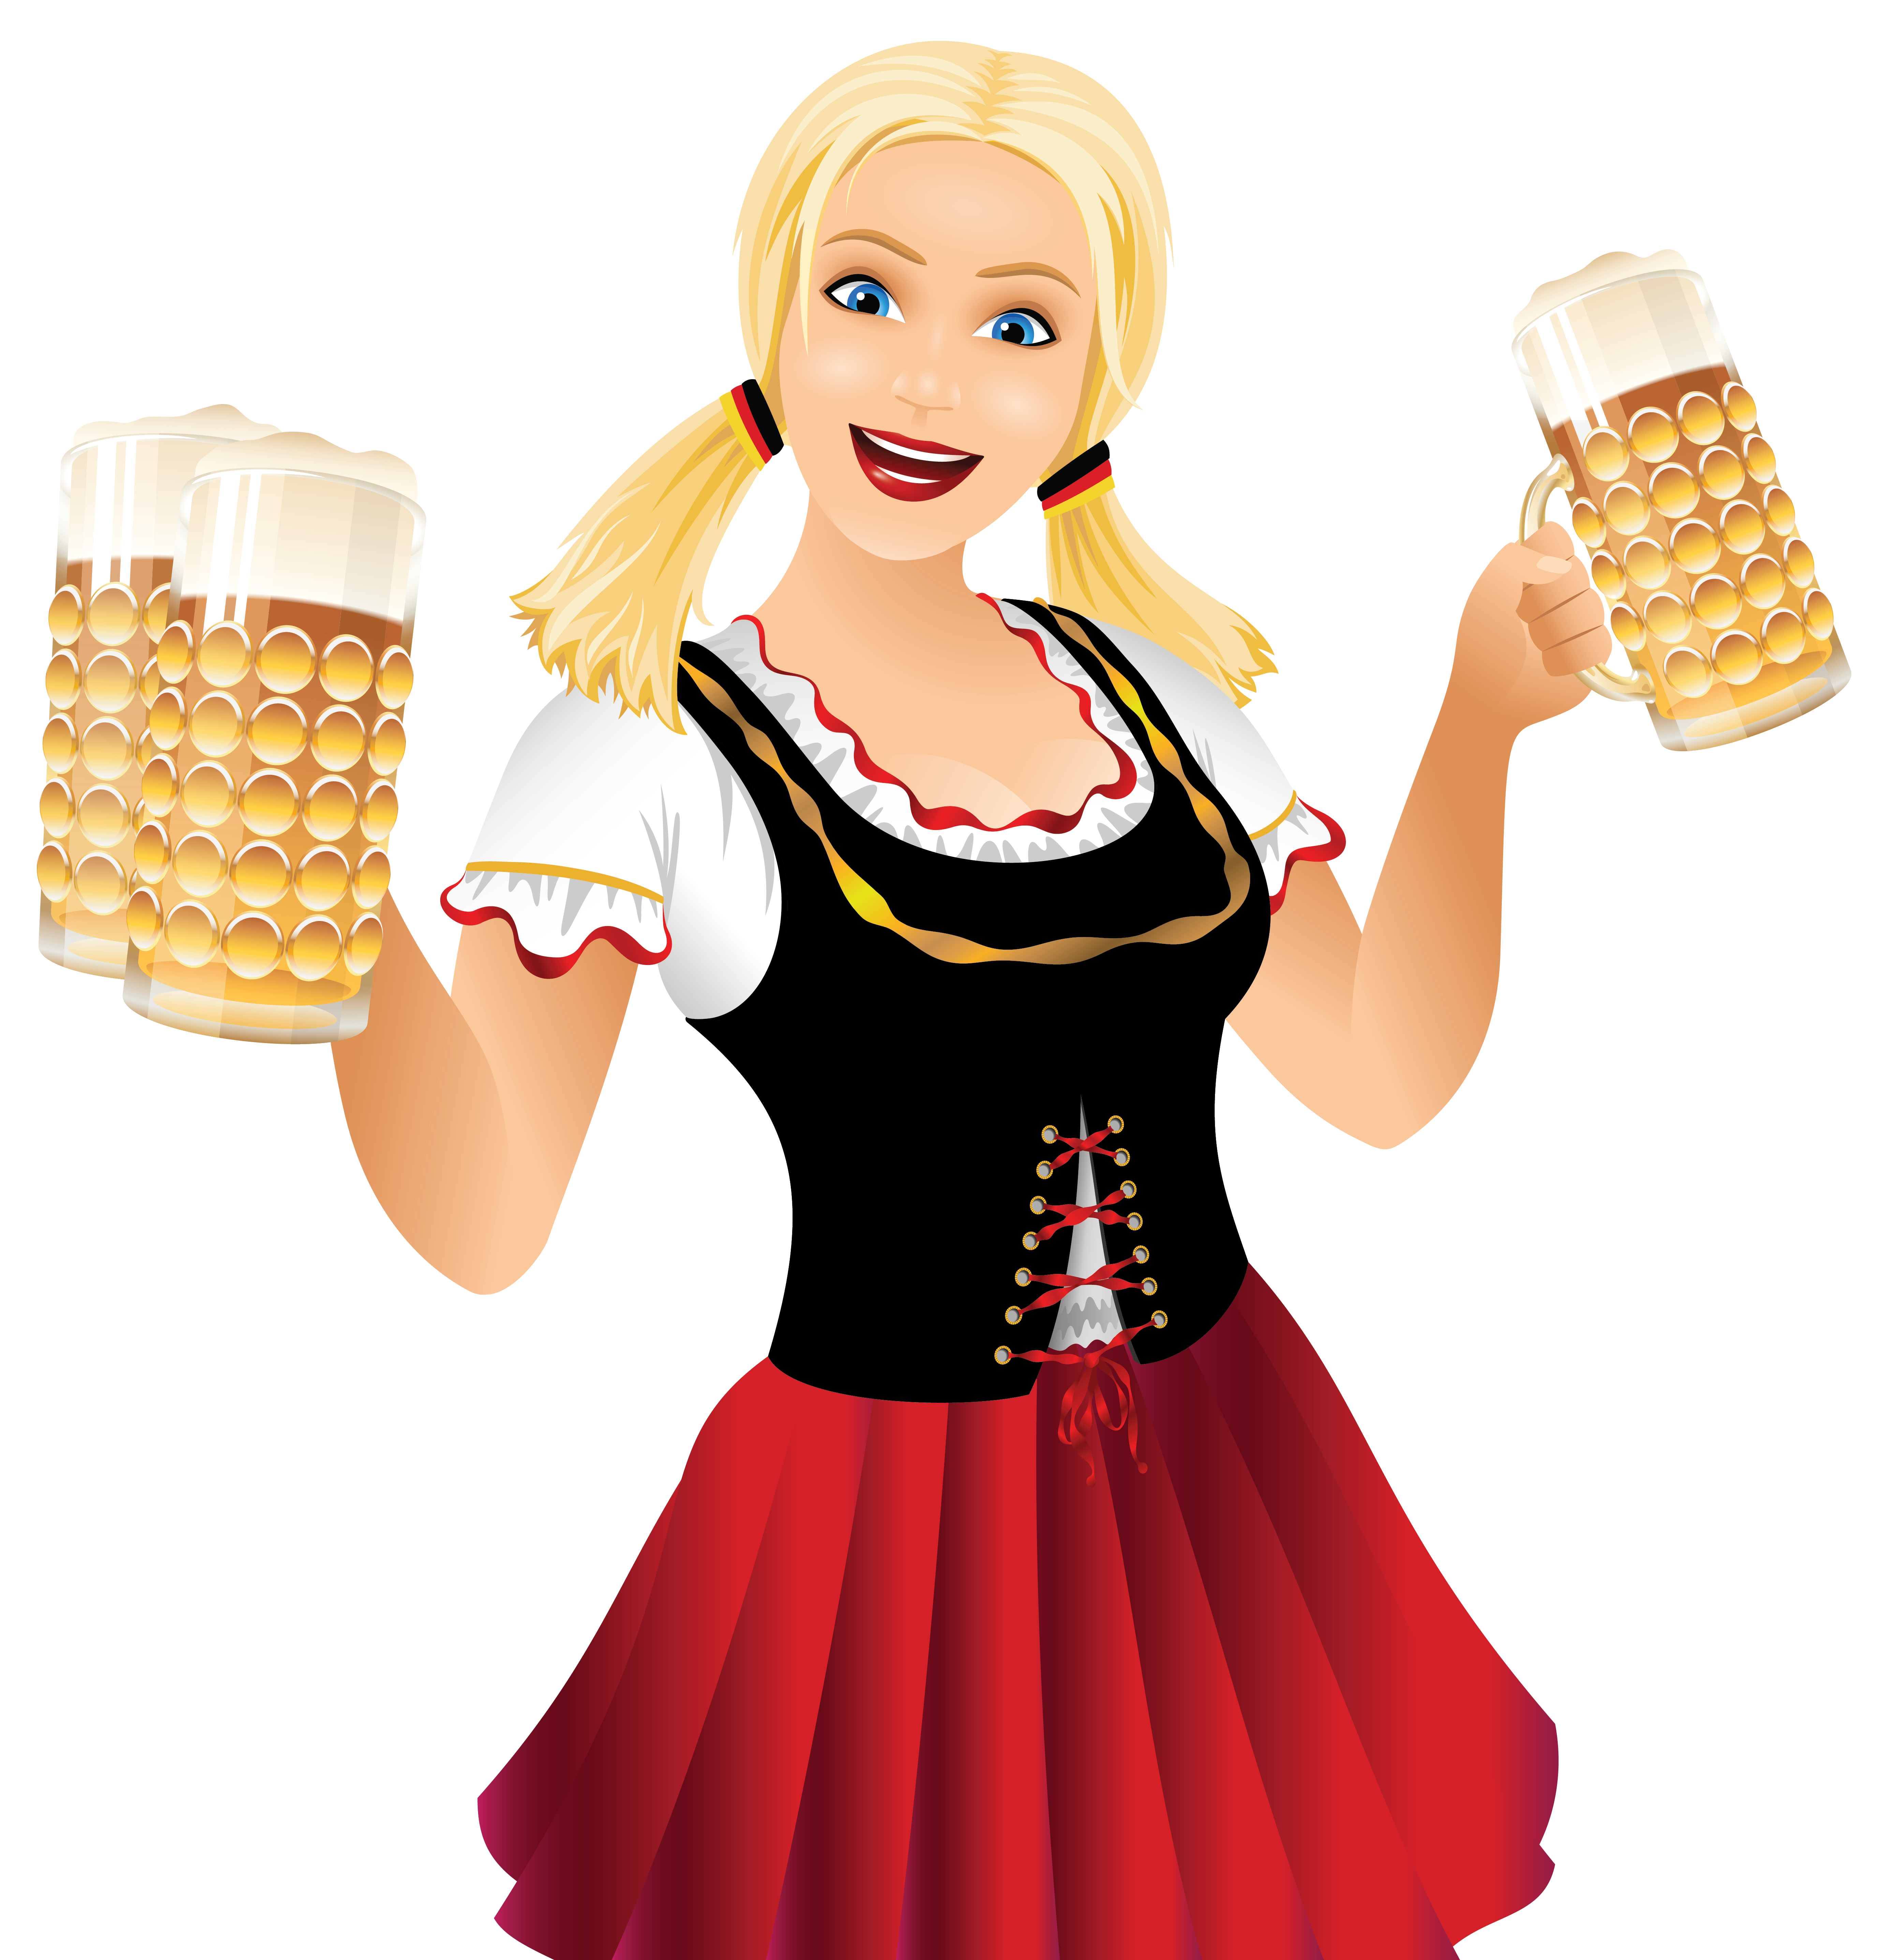 clip art royalty free download Act of kindness clipart. Oktoberfest girl with beer